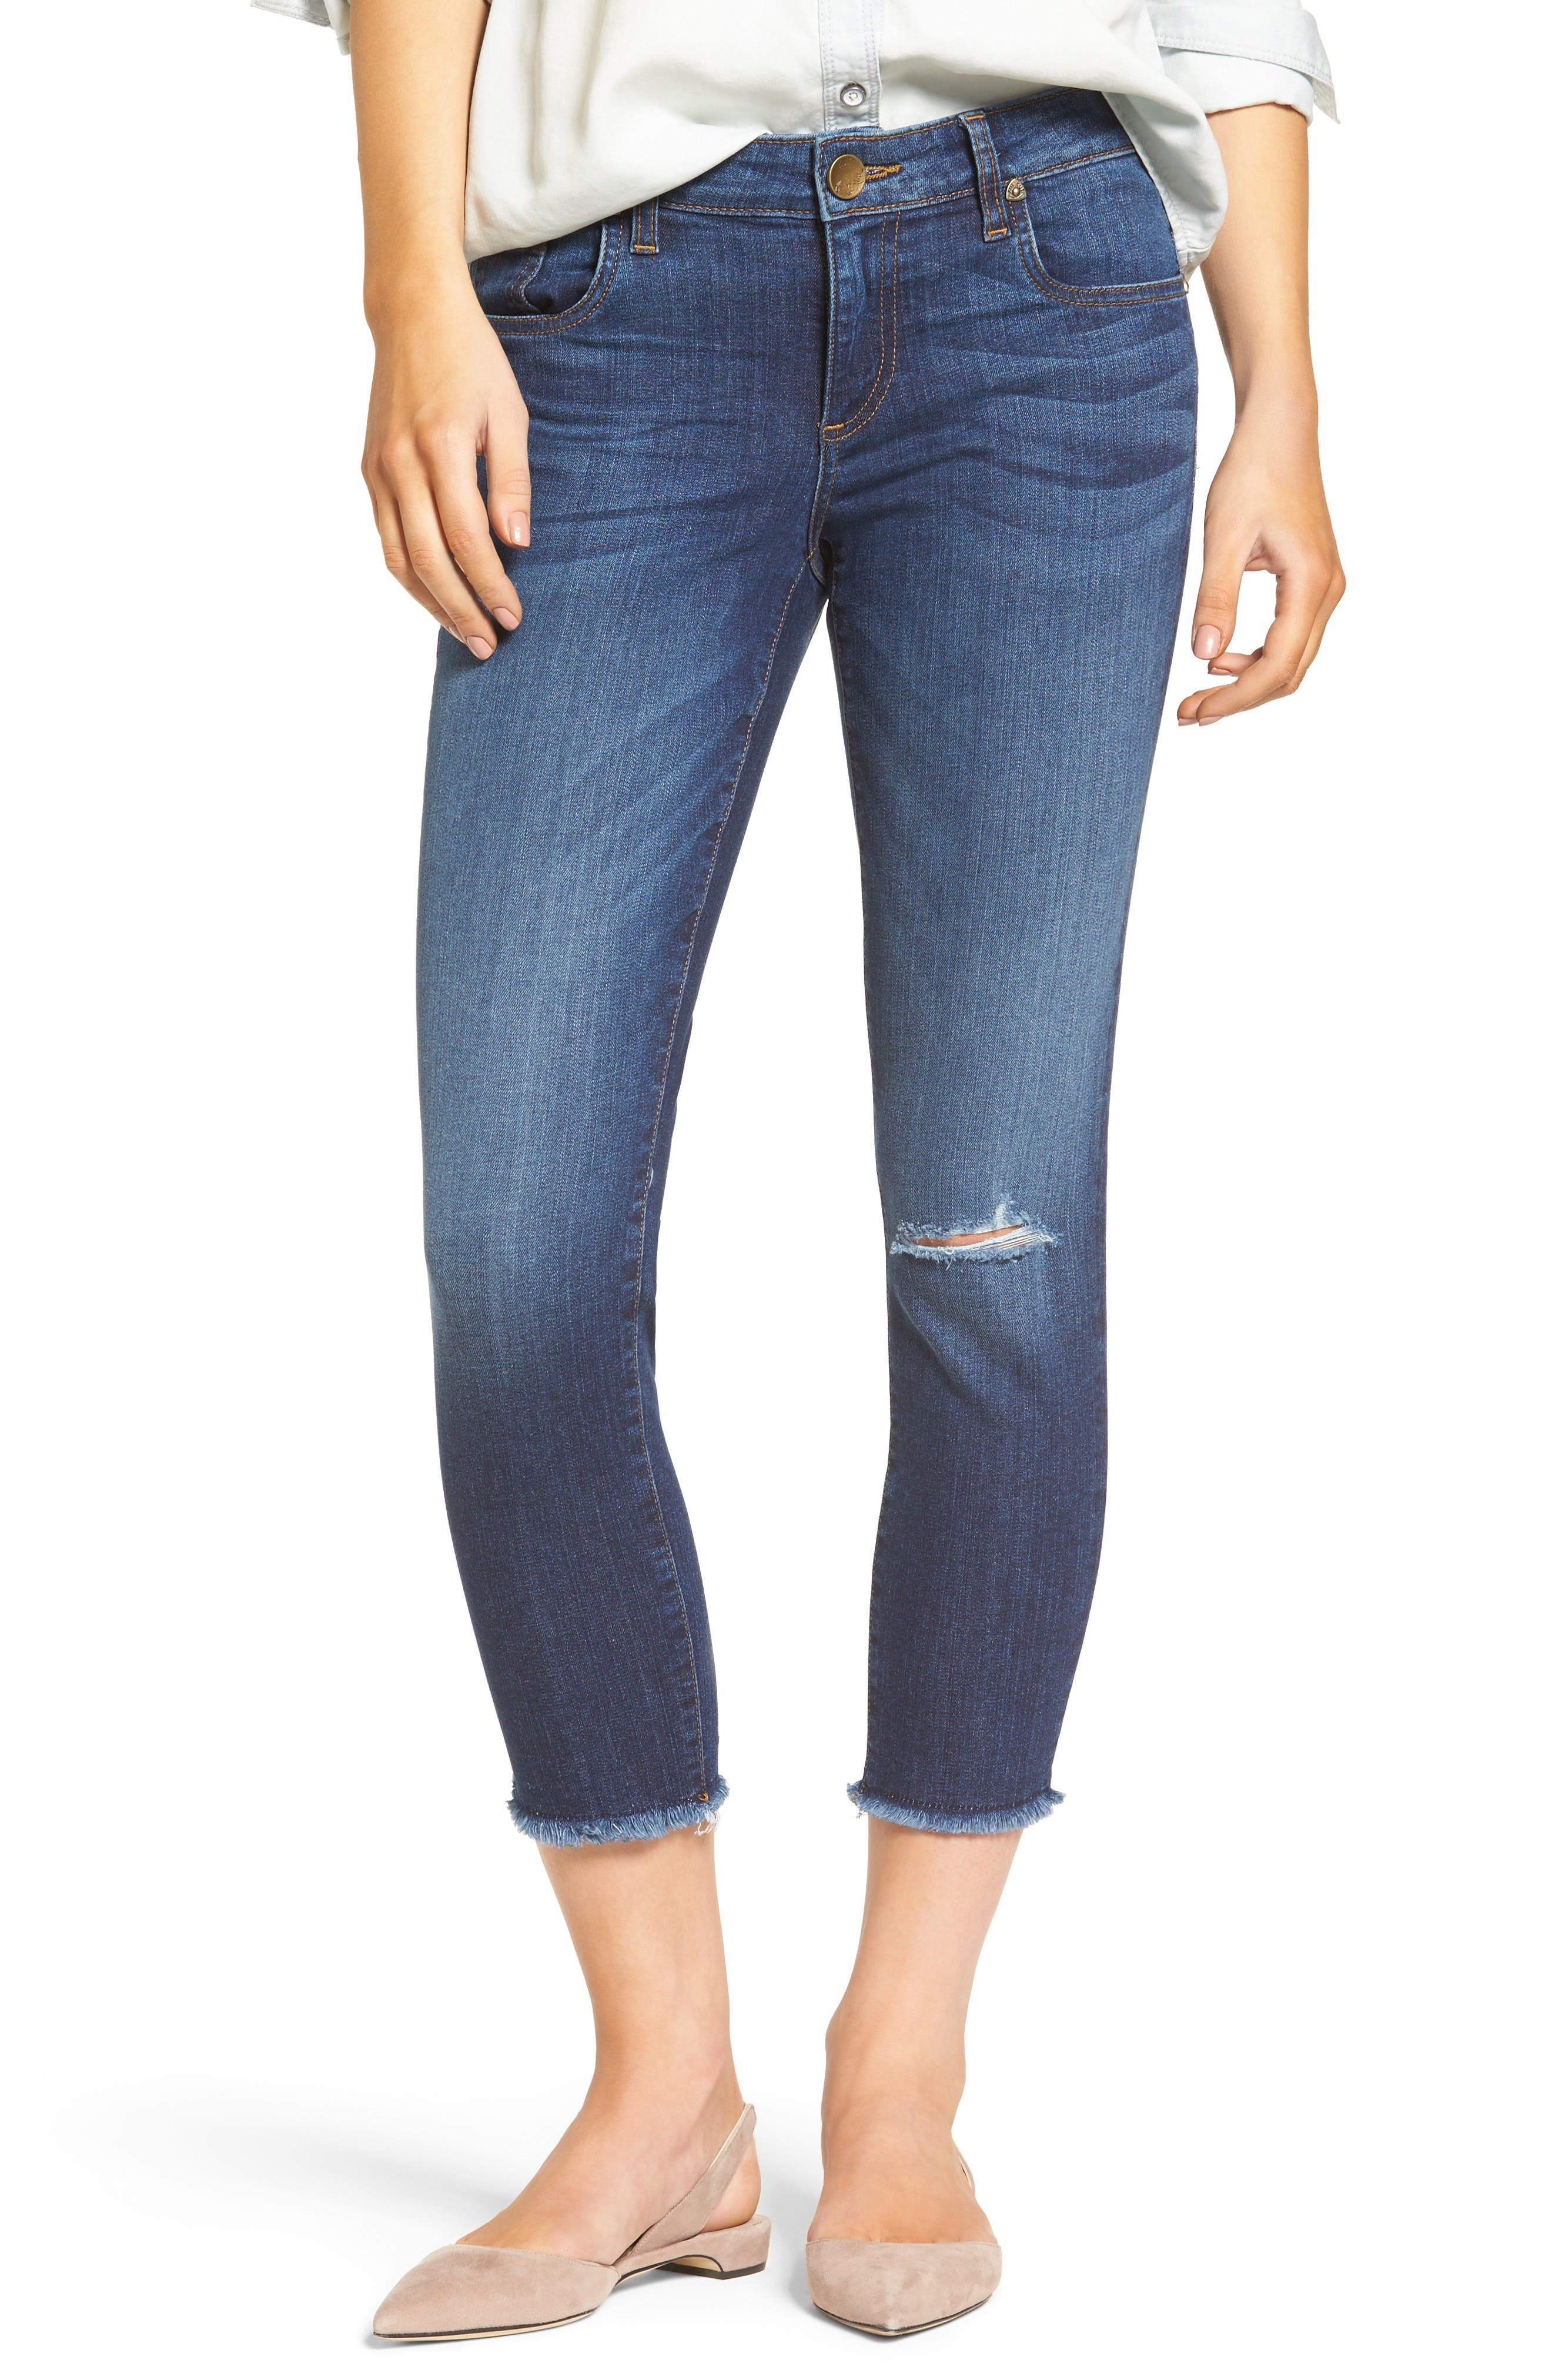 Alternate Image 1 Selected - KUT from the Kloth Donna Ripped Crop Jeans (Peaceable) (Regular & Petite)